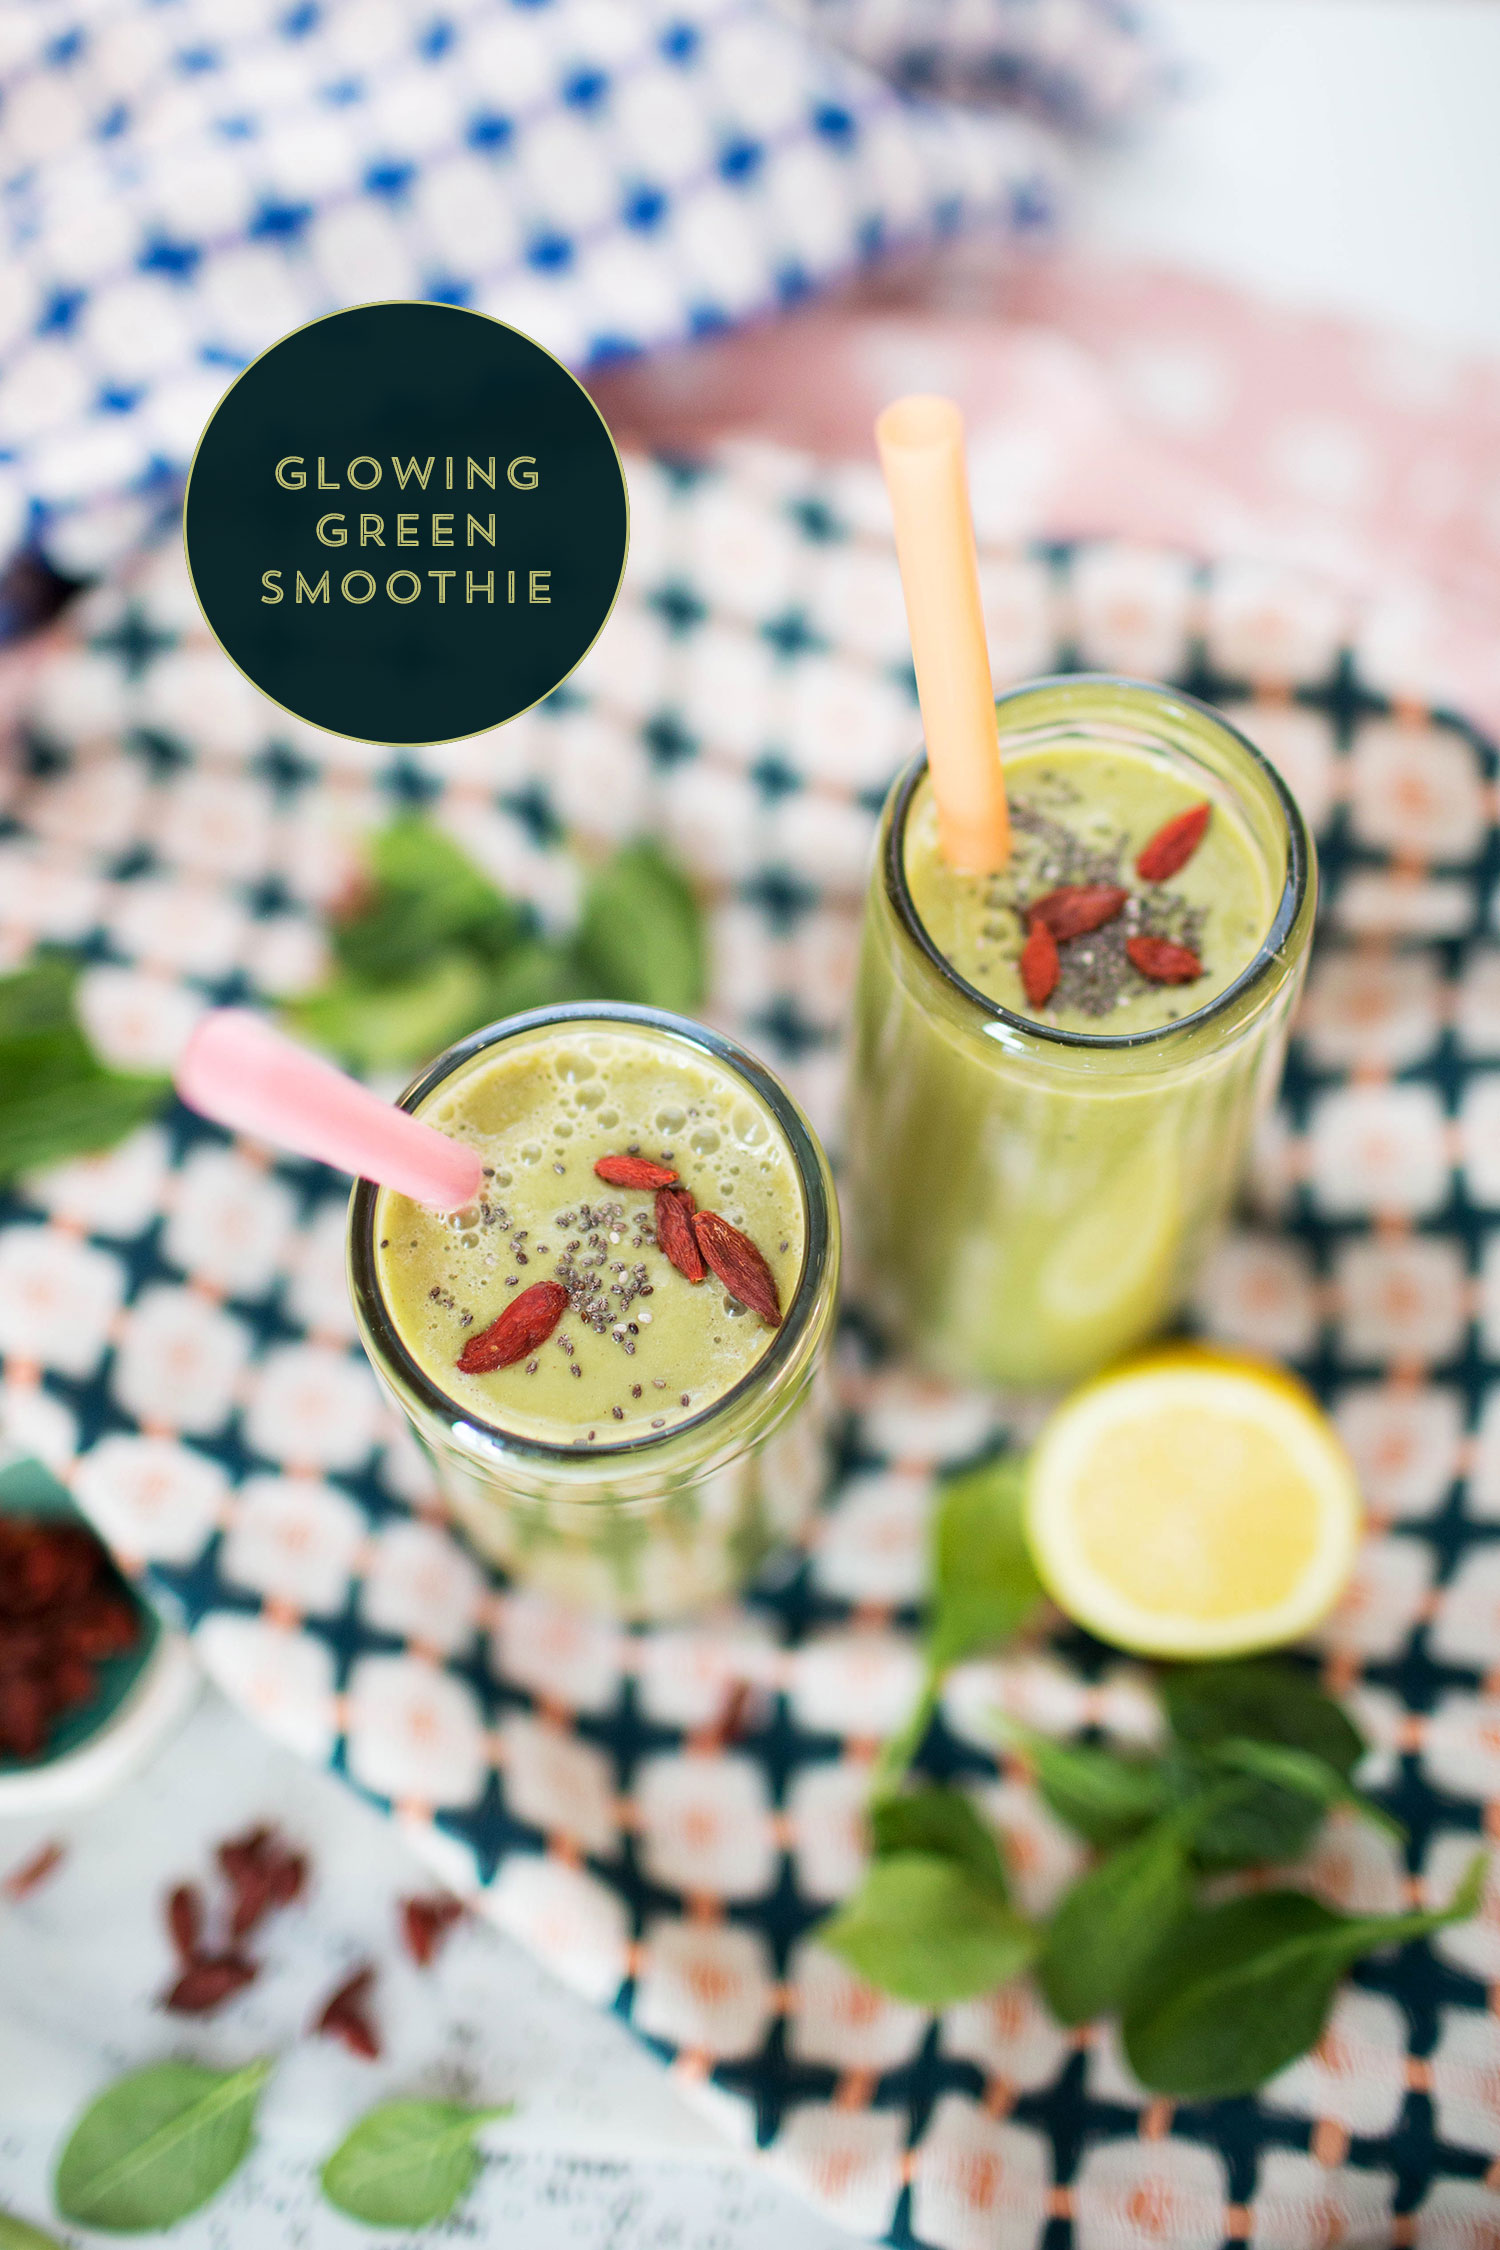 Natalie's Column: Glowing Green Smoothie | You've Got Flair